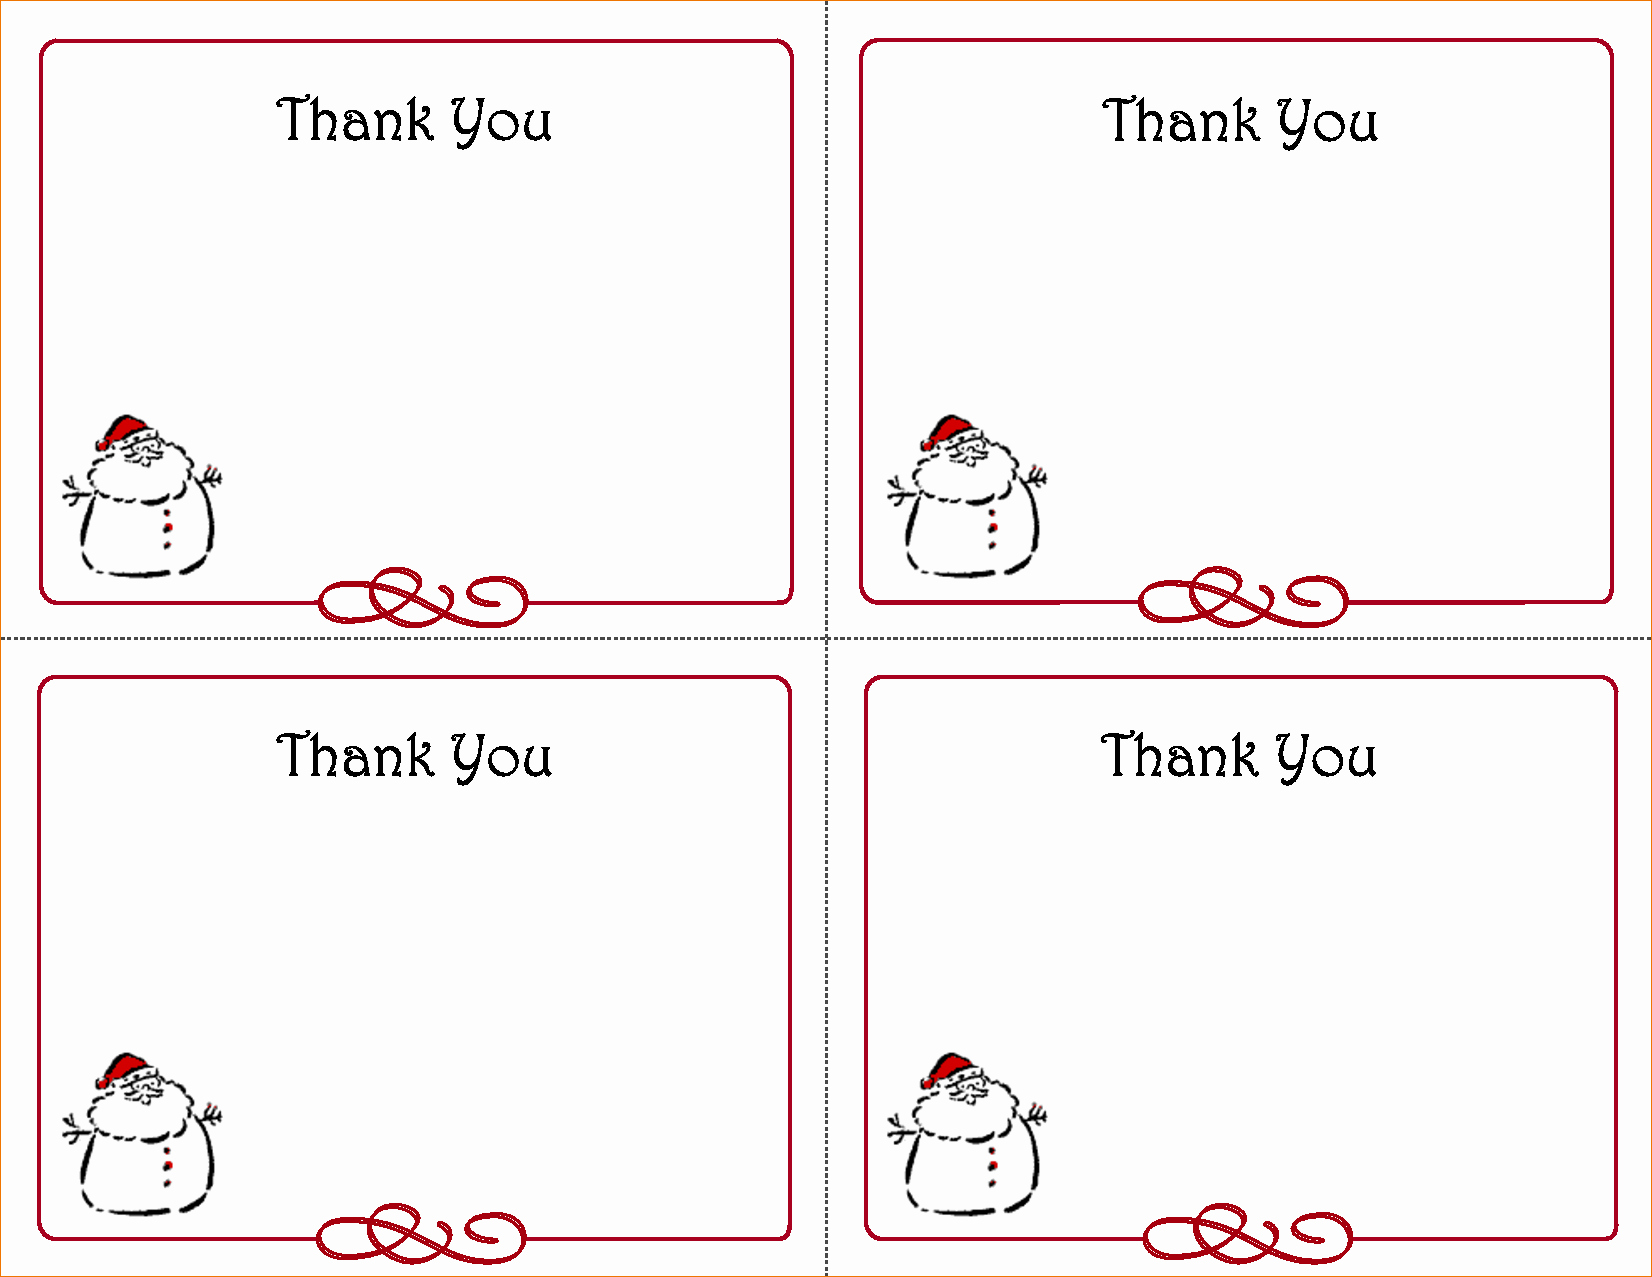 Blank Thank You Card Template Unique 5 Free Thank You Card Template